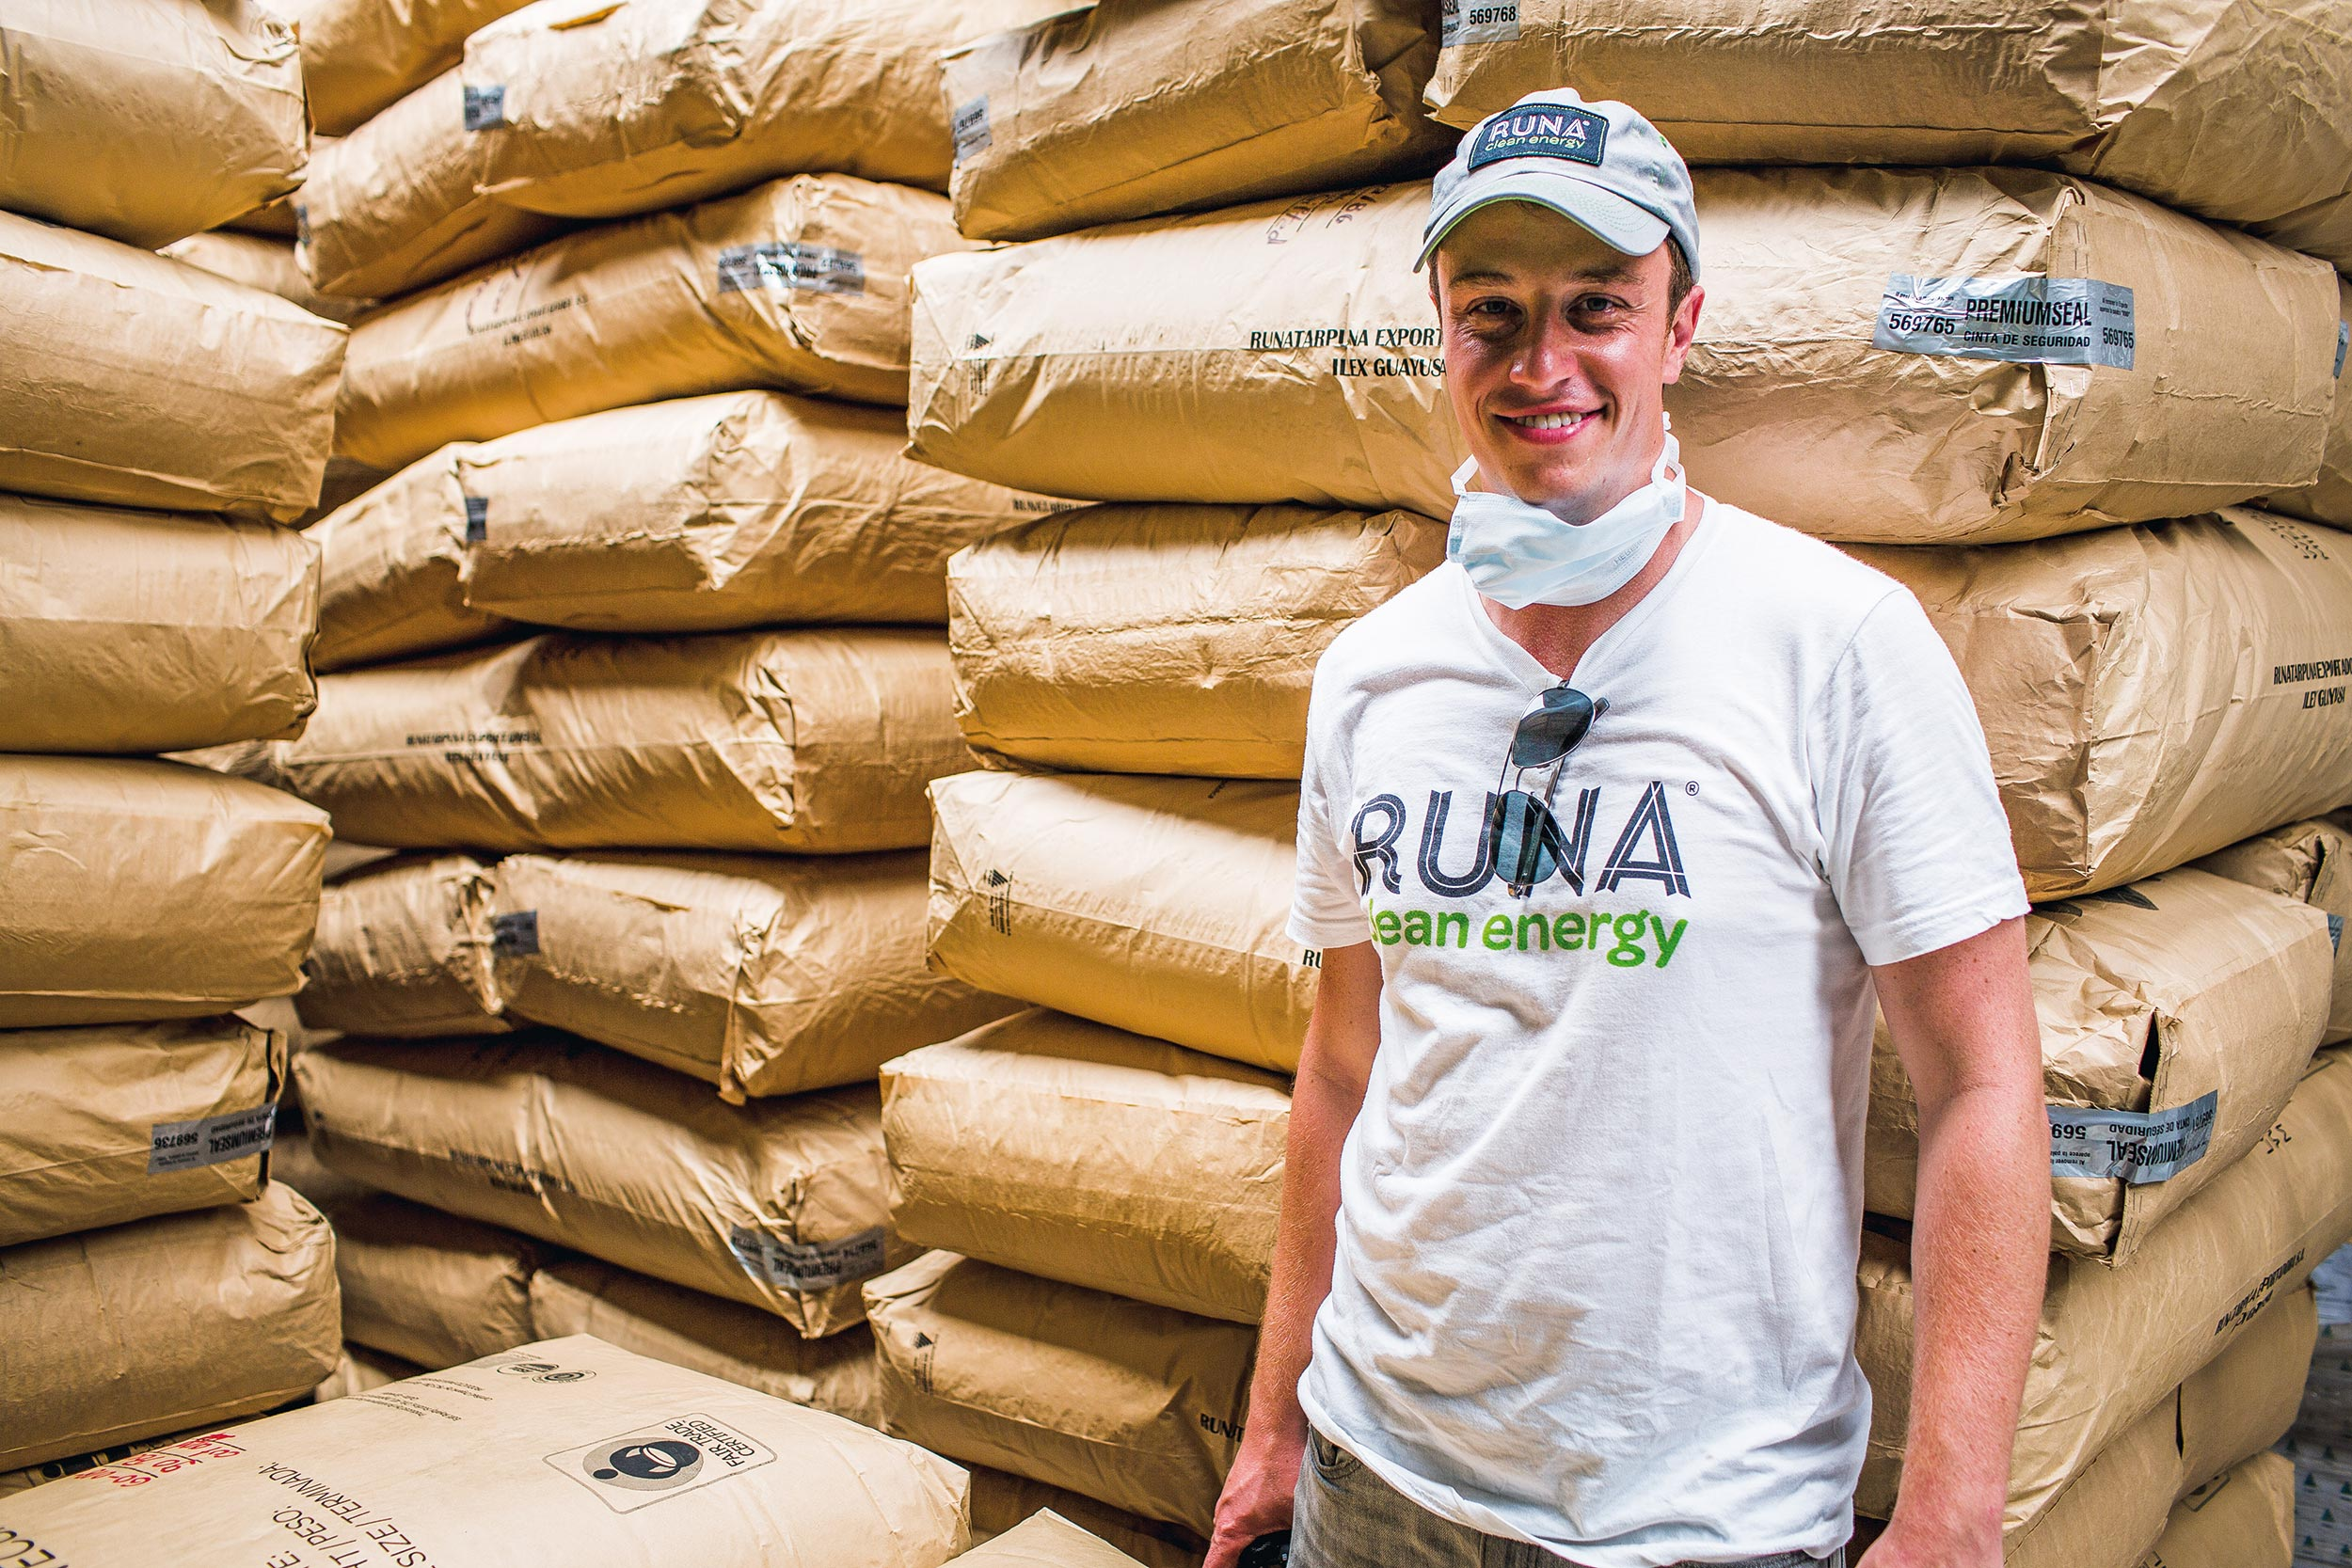 A smiling man leaning back against stacked sacks, Runa, Ecuador